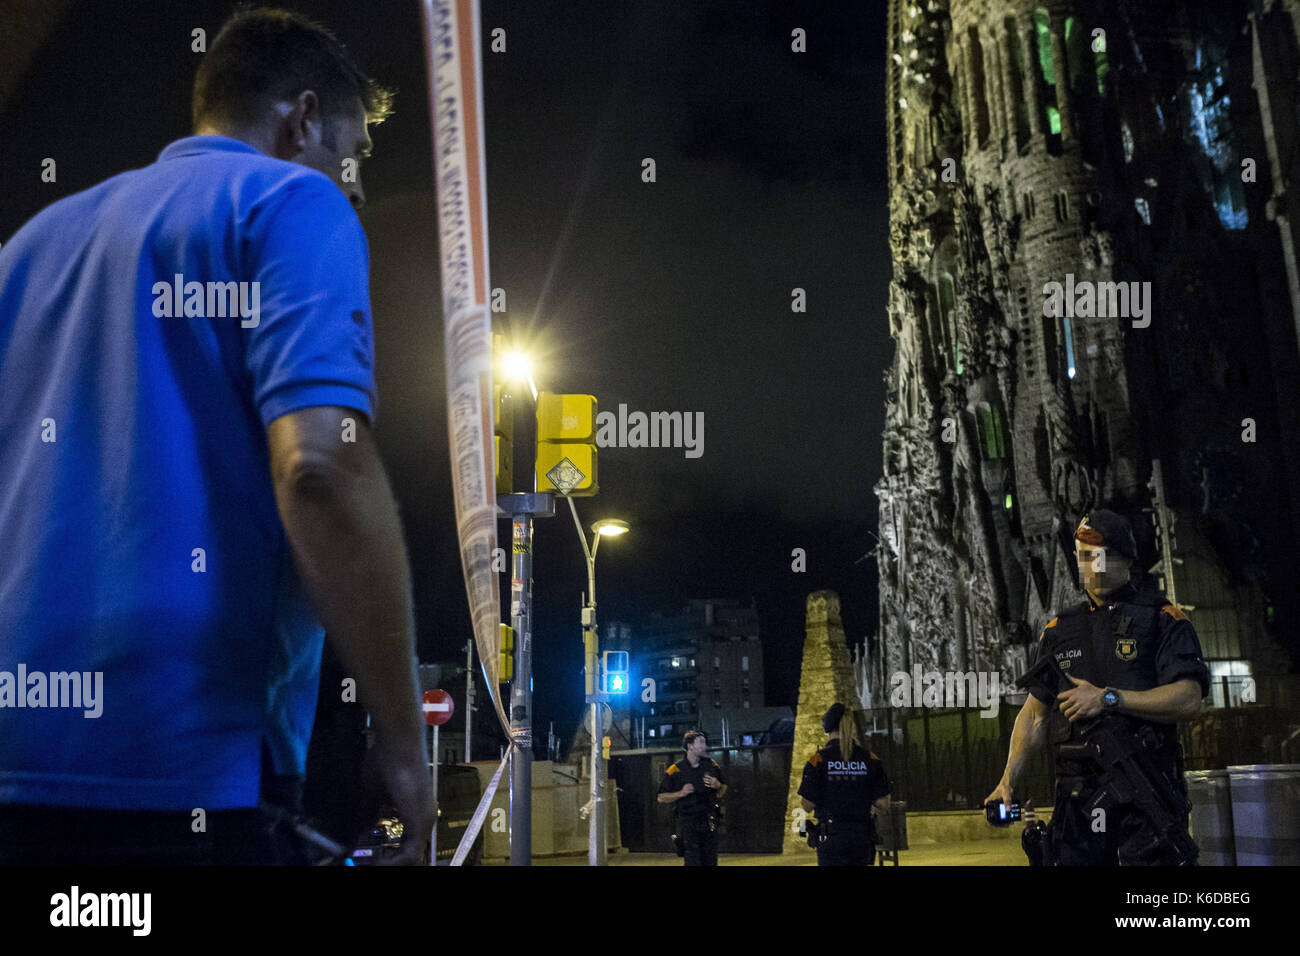 Members of the Mossos d'Esquadra, the Catalan Police, watch the perimeter of the Sagrada Familia after a terrorist - Stock Image